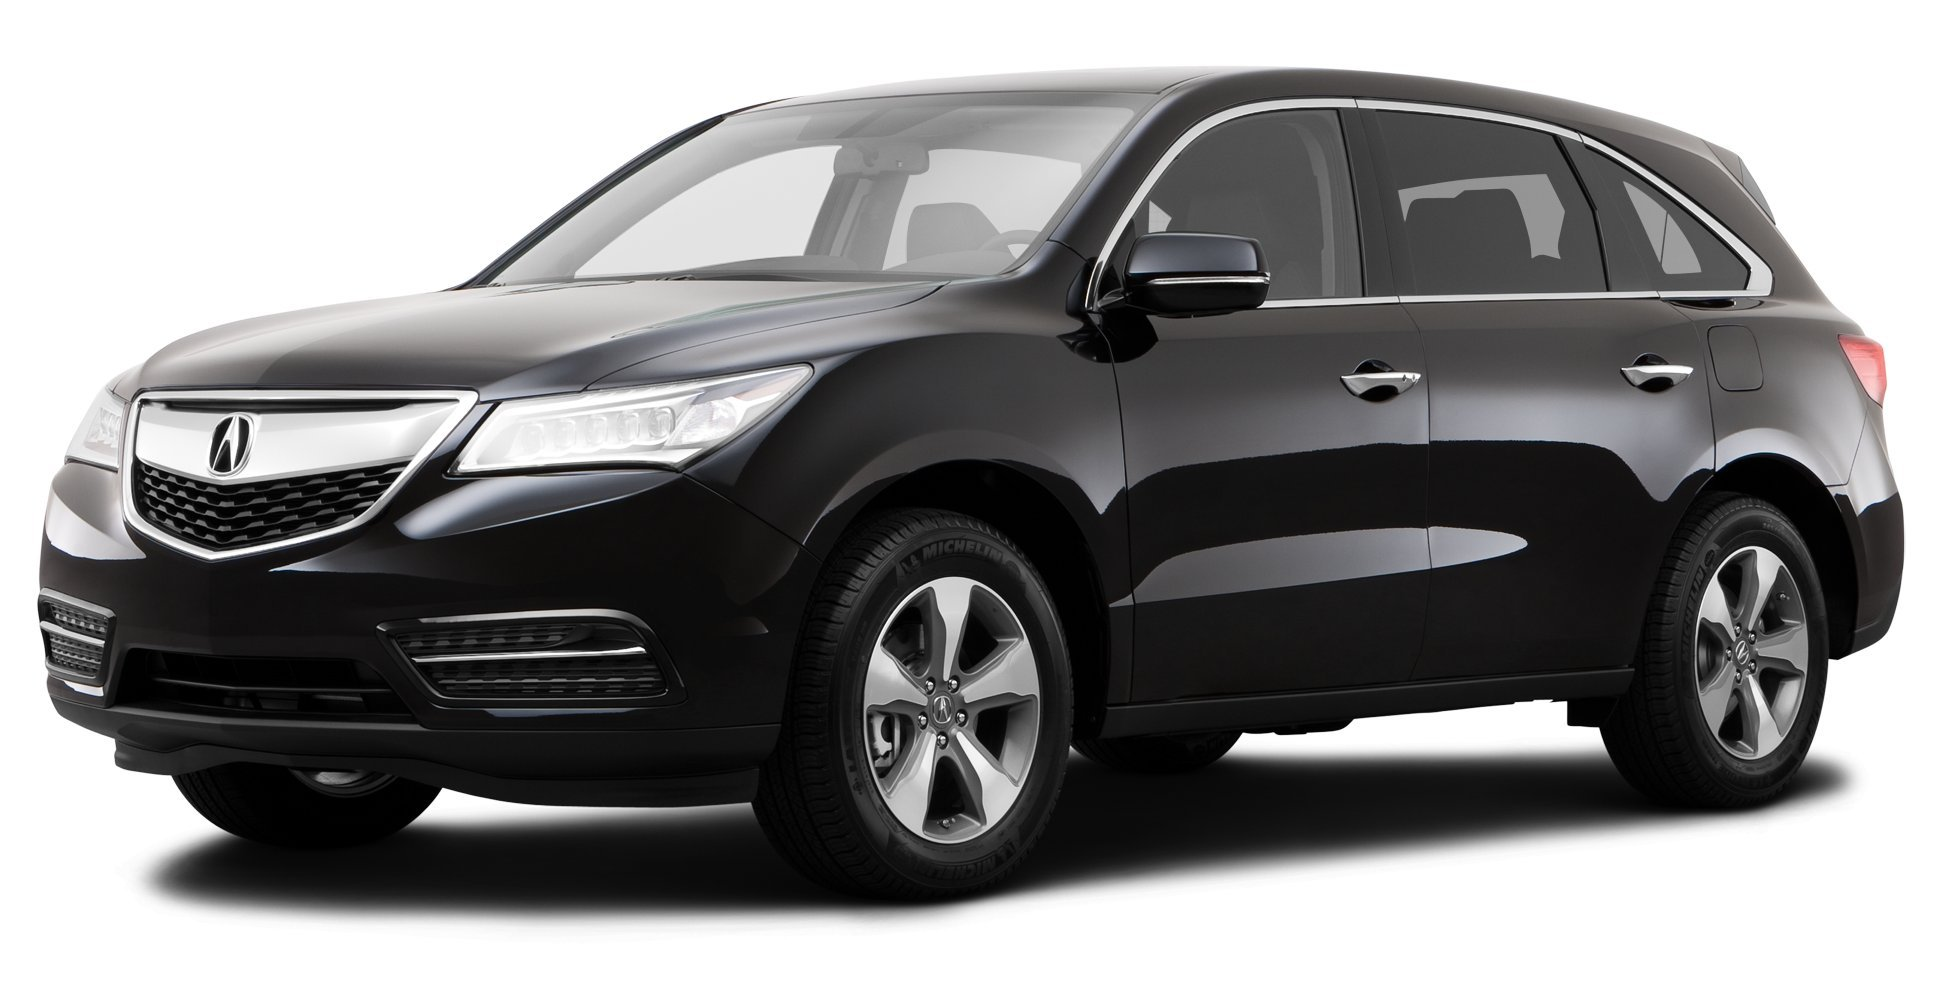 Acura 2014 acura mdx specs : Amazon.com: 2015 Acura MDX Reviews, Images, and Specs: Vehicles